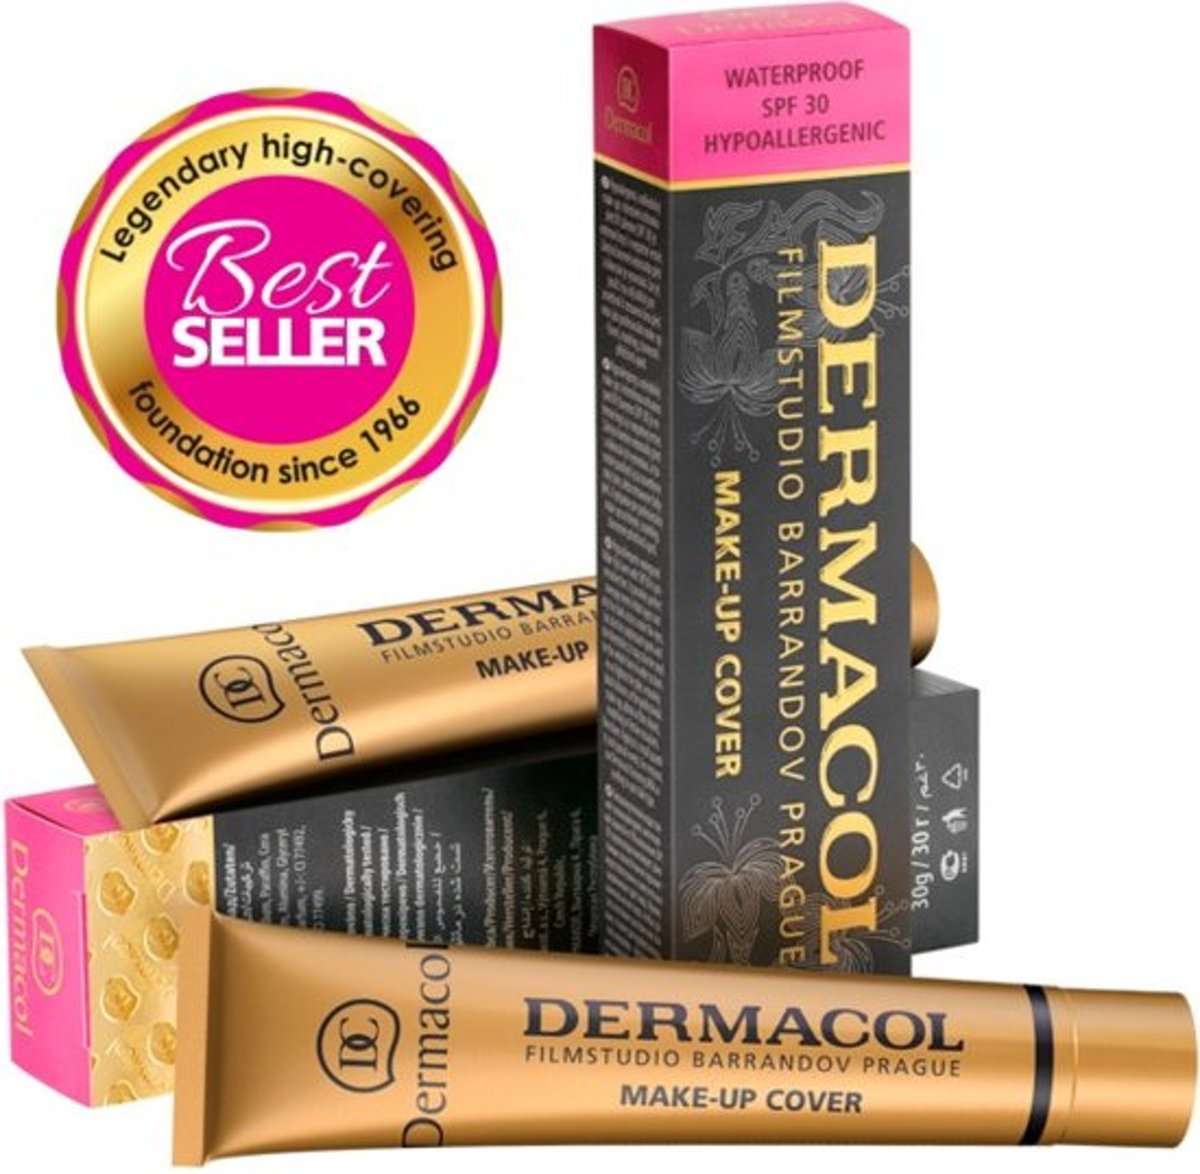 Dermacol camouflage make-up cover Legendary high covering make-up - 30 gram - vrouw - Waterproof TINT 207